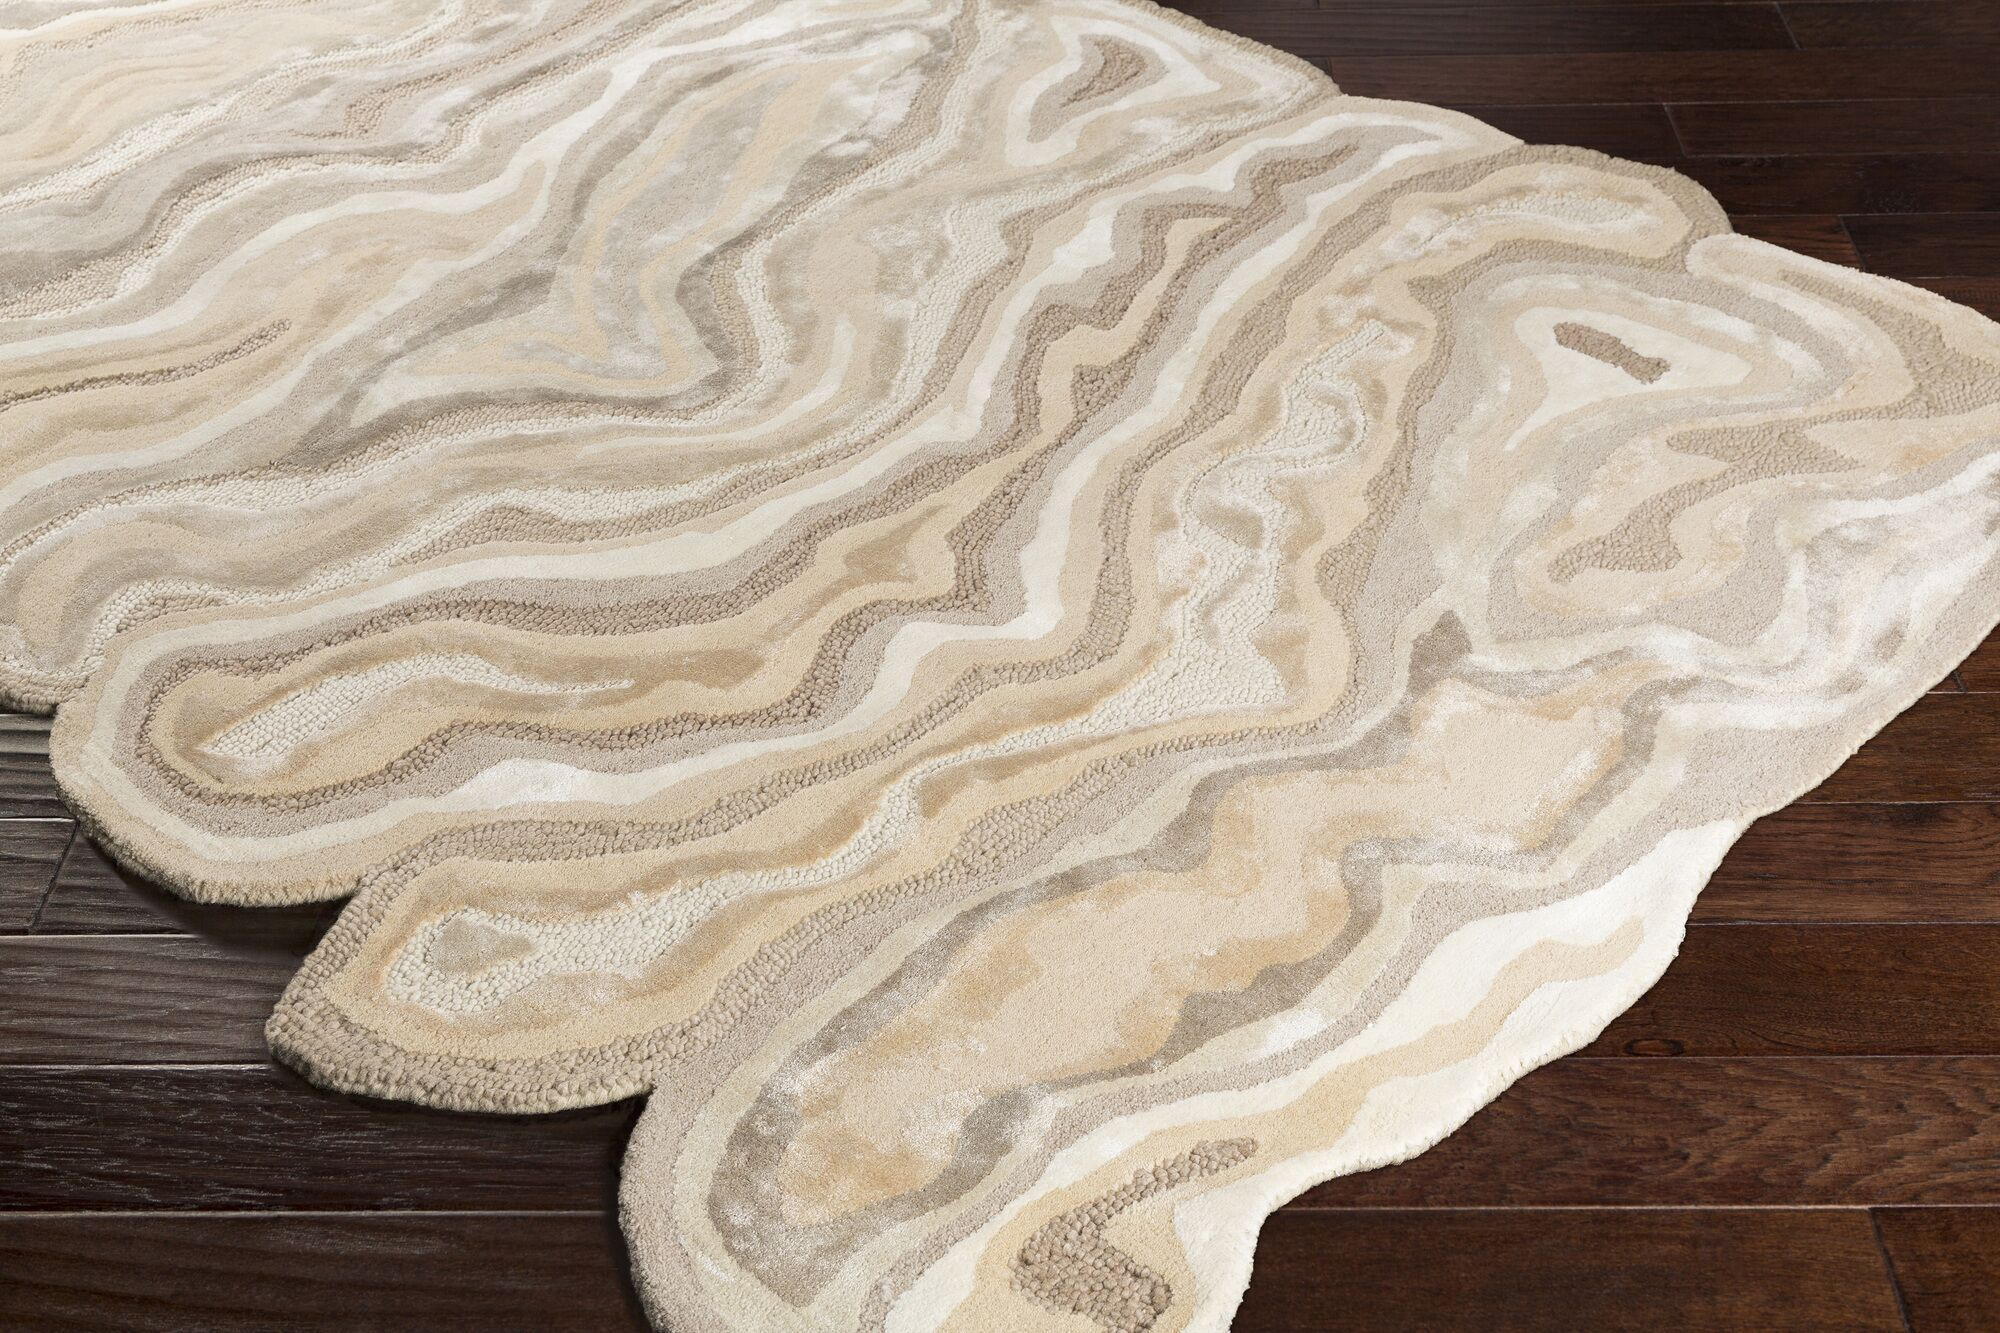 Ramsay Hand-Tufted Beige/Wheat Area Rug Rug Size: Rectangle 8' x 11'